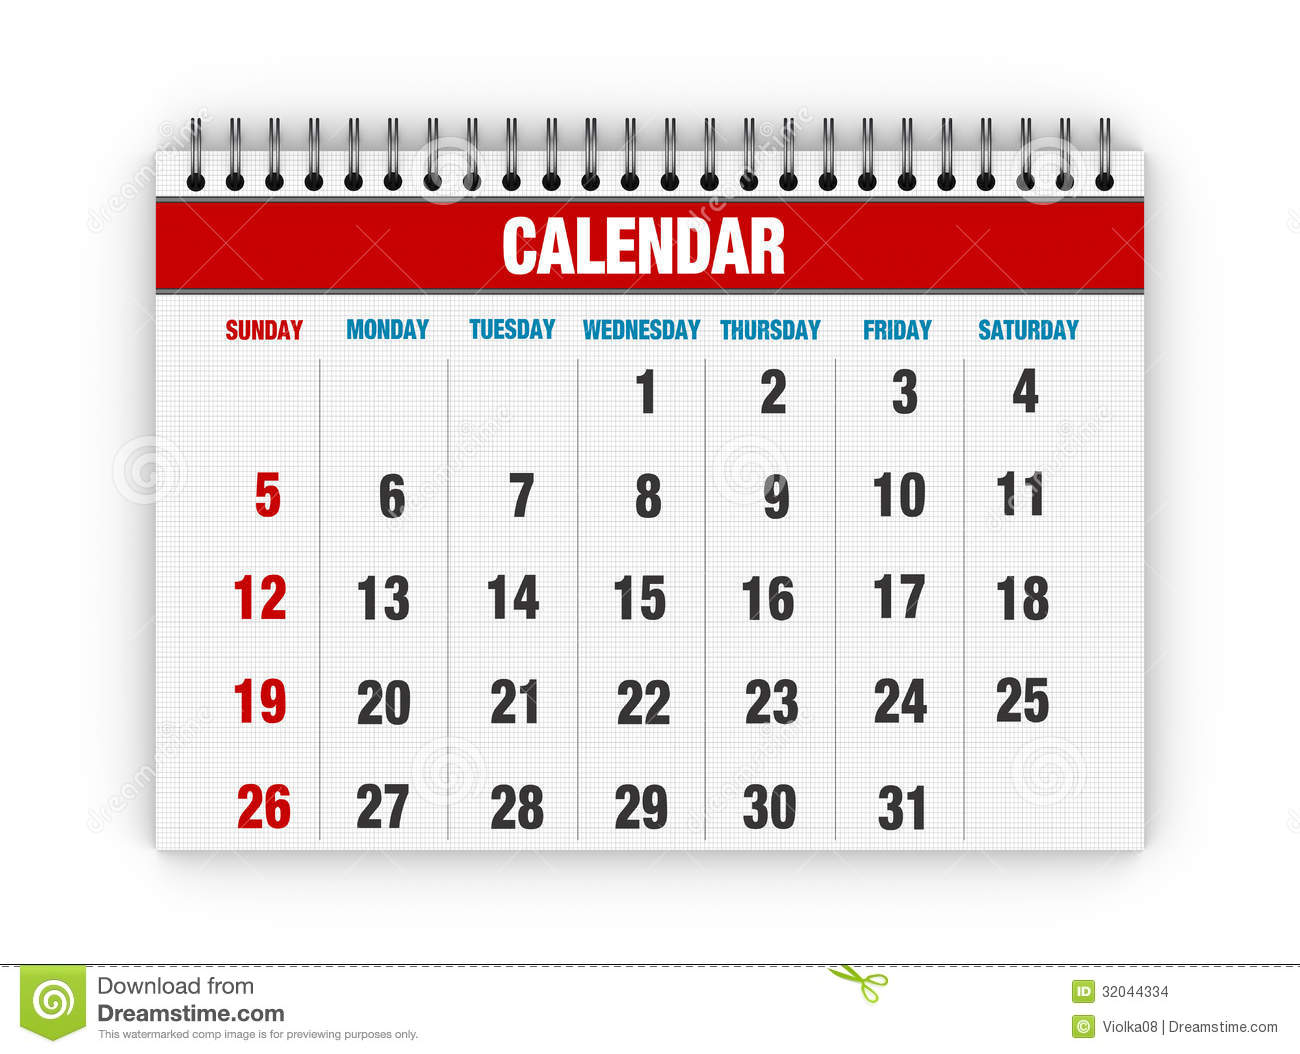 Calendar Of Art : Blank calendar clipart suggest